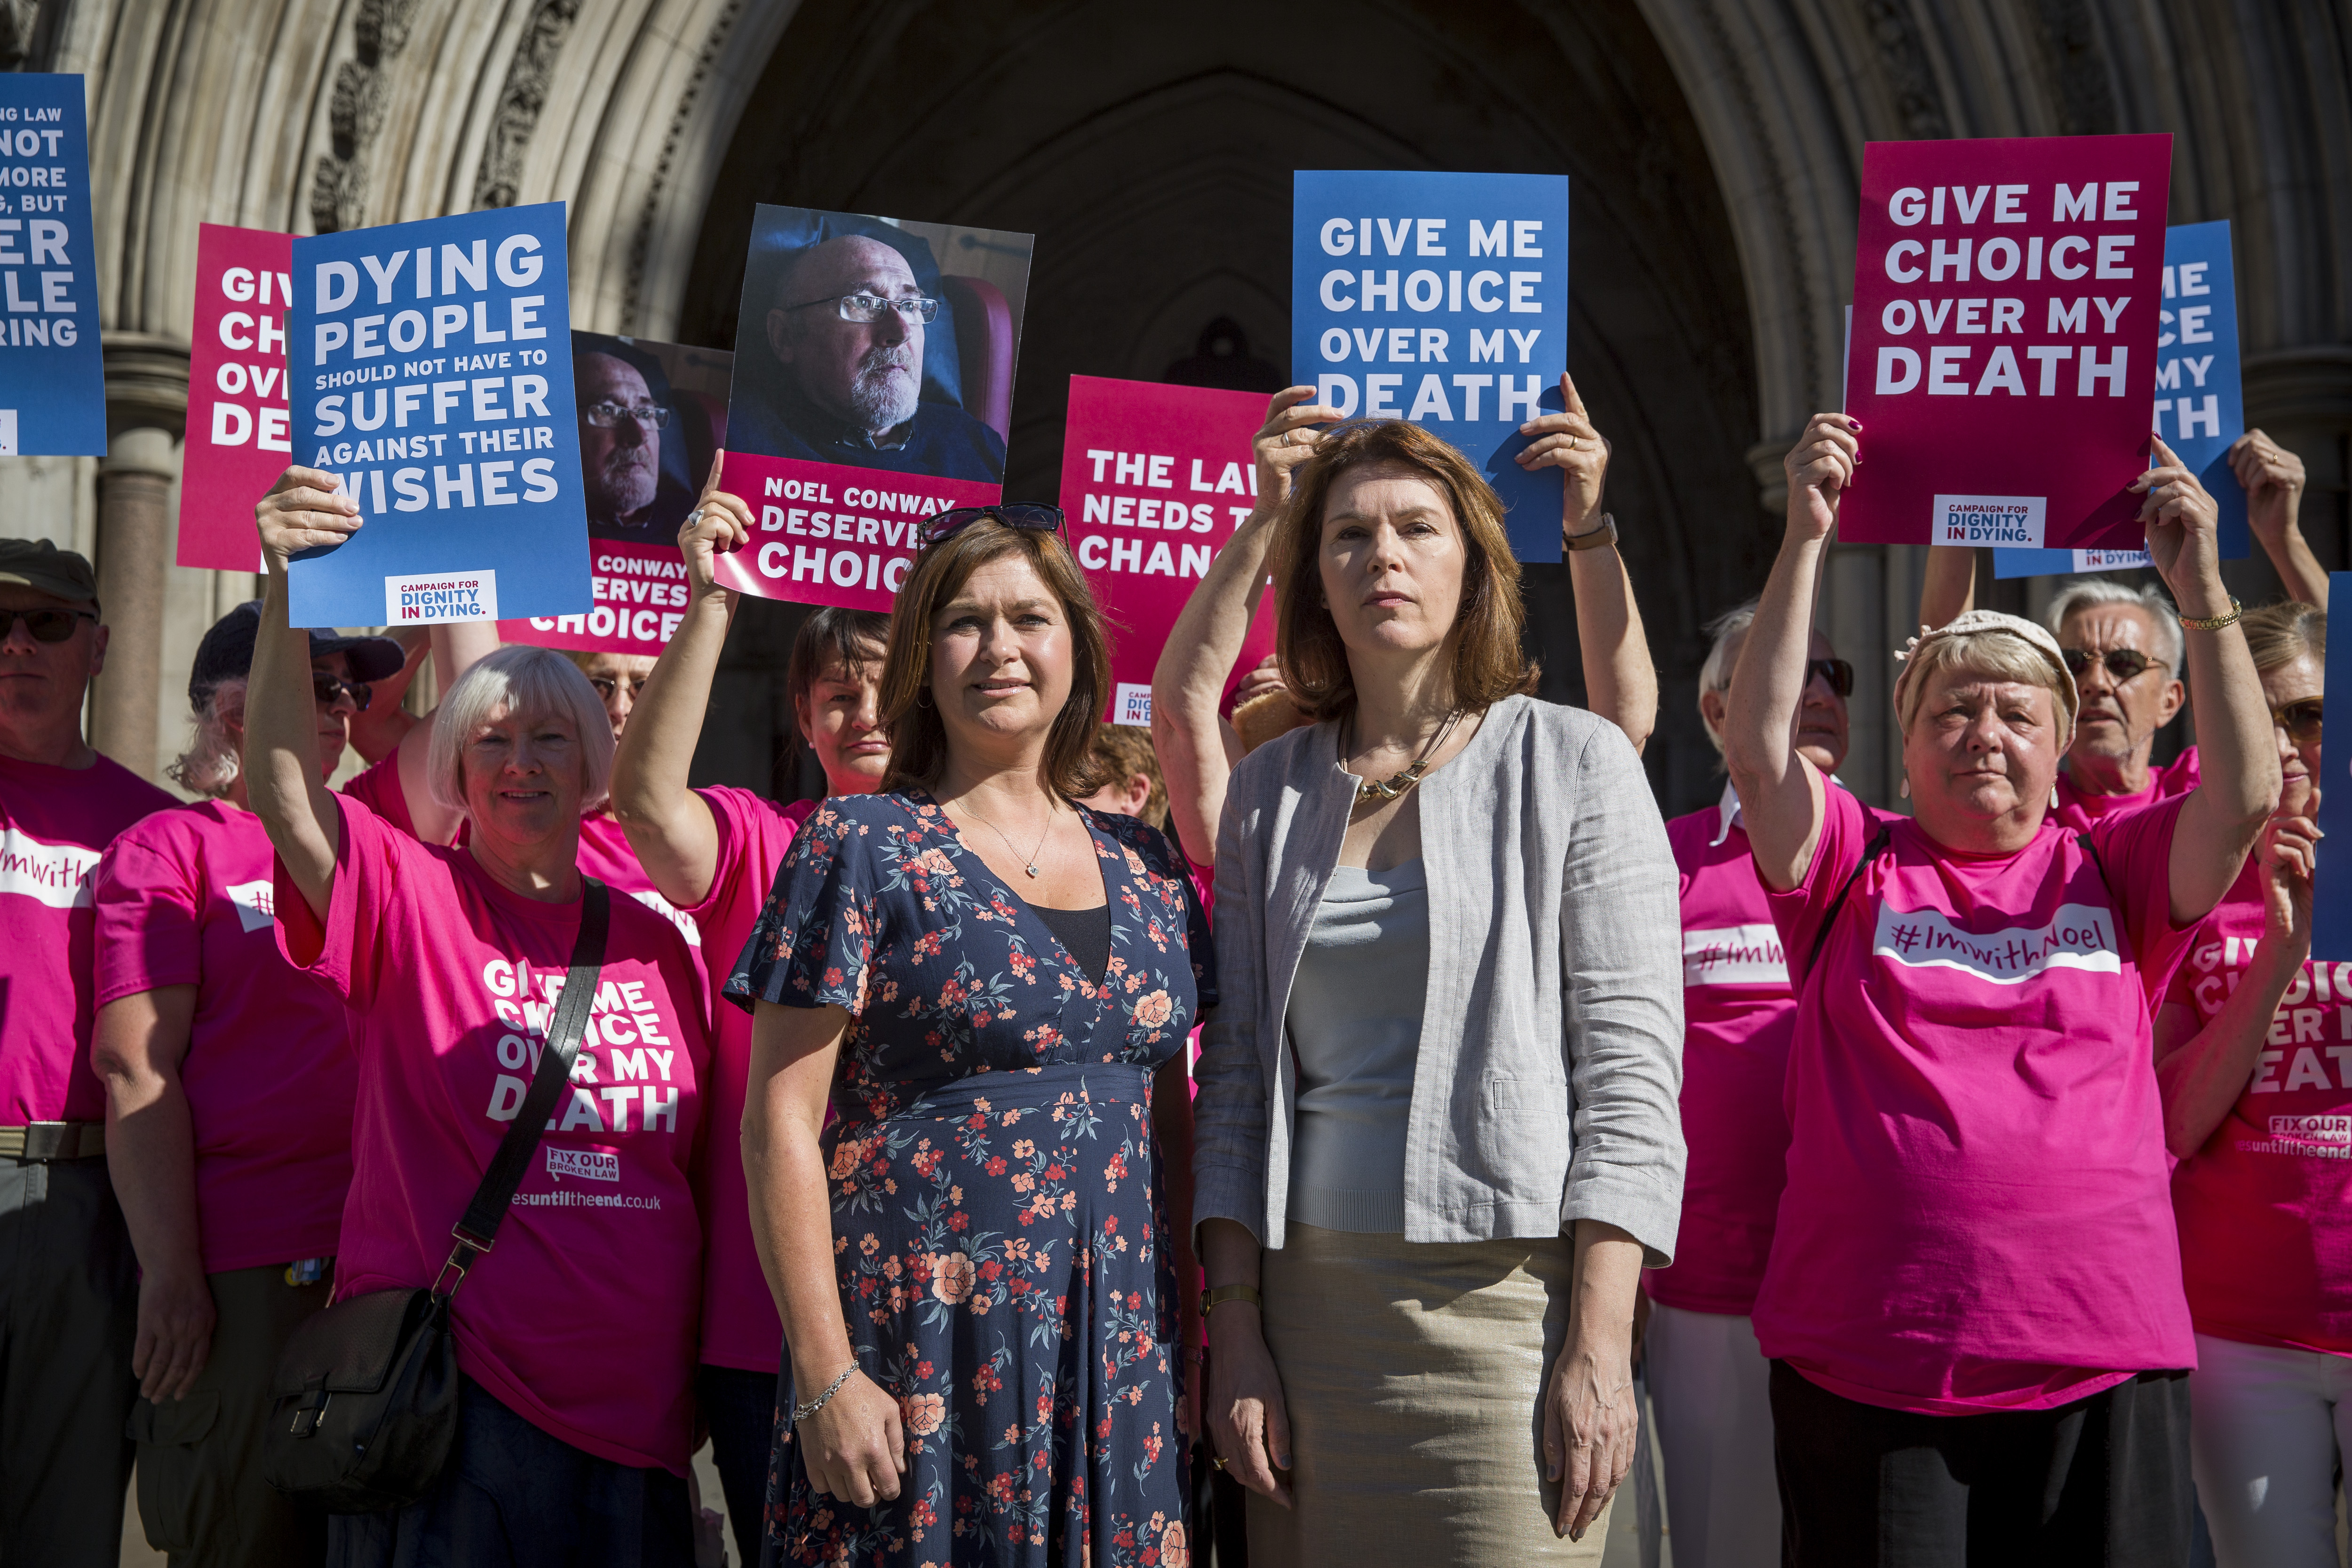 Dignity In Dying campaigners protest